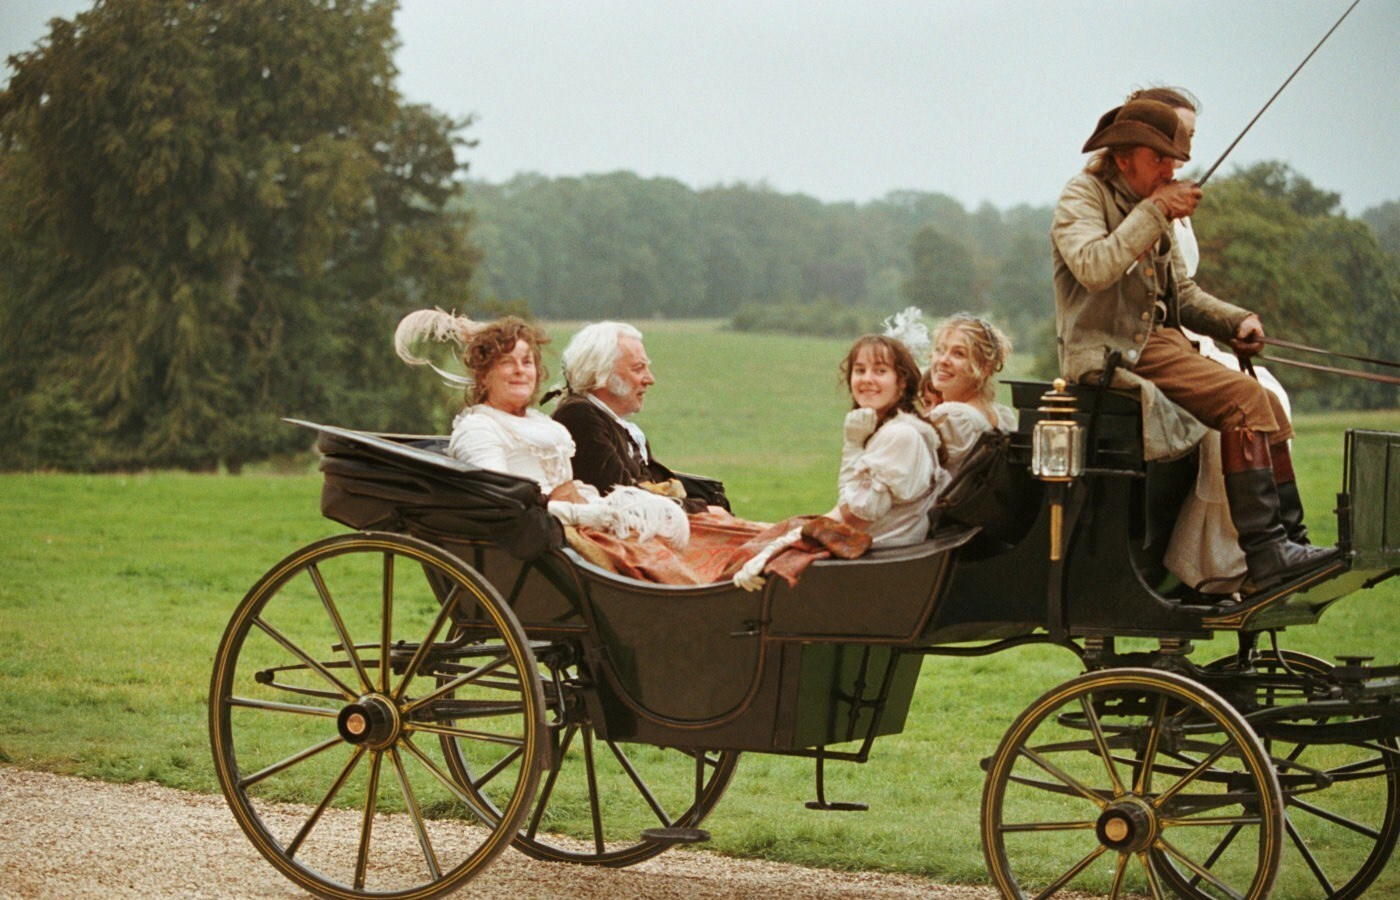 An image from Pride and Prejudice showing the Bennett family in a carriage